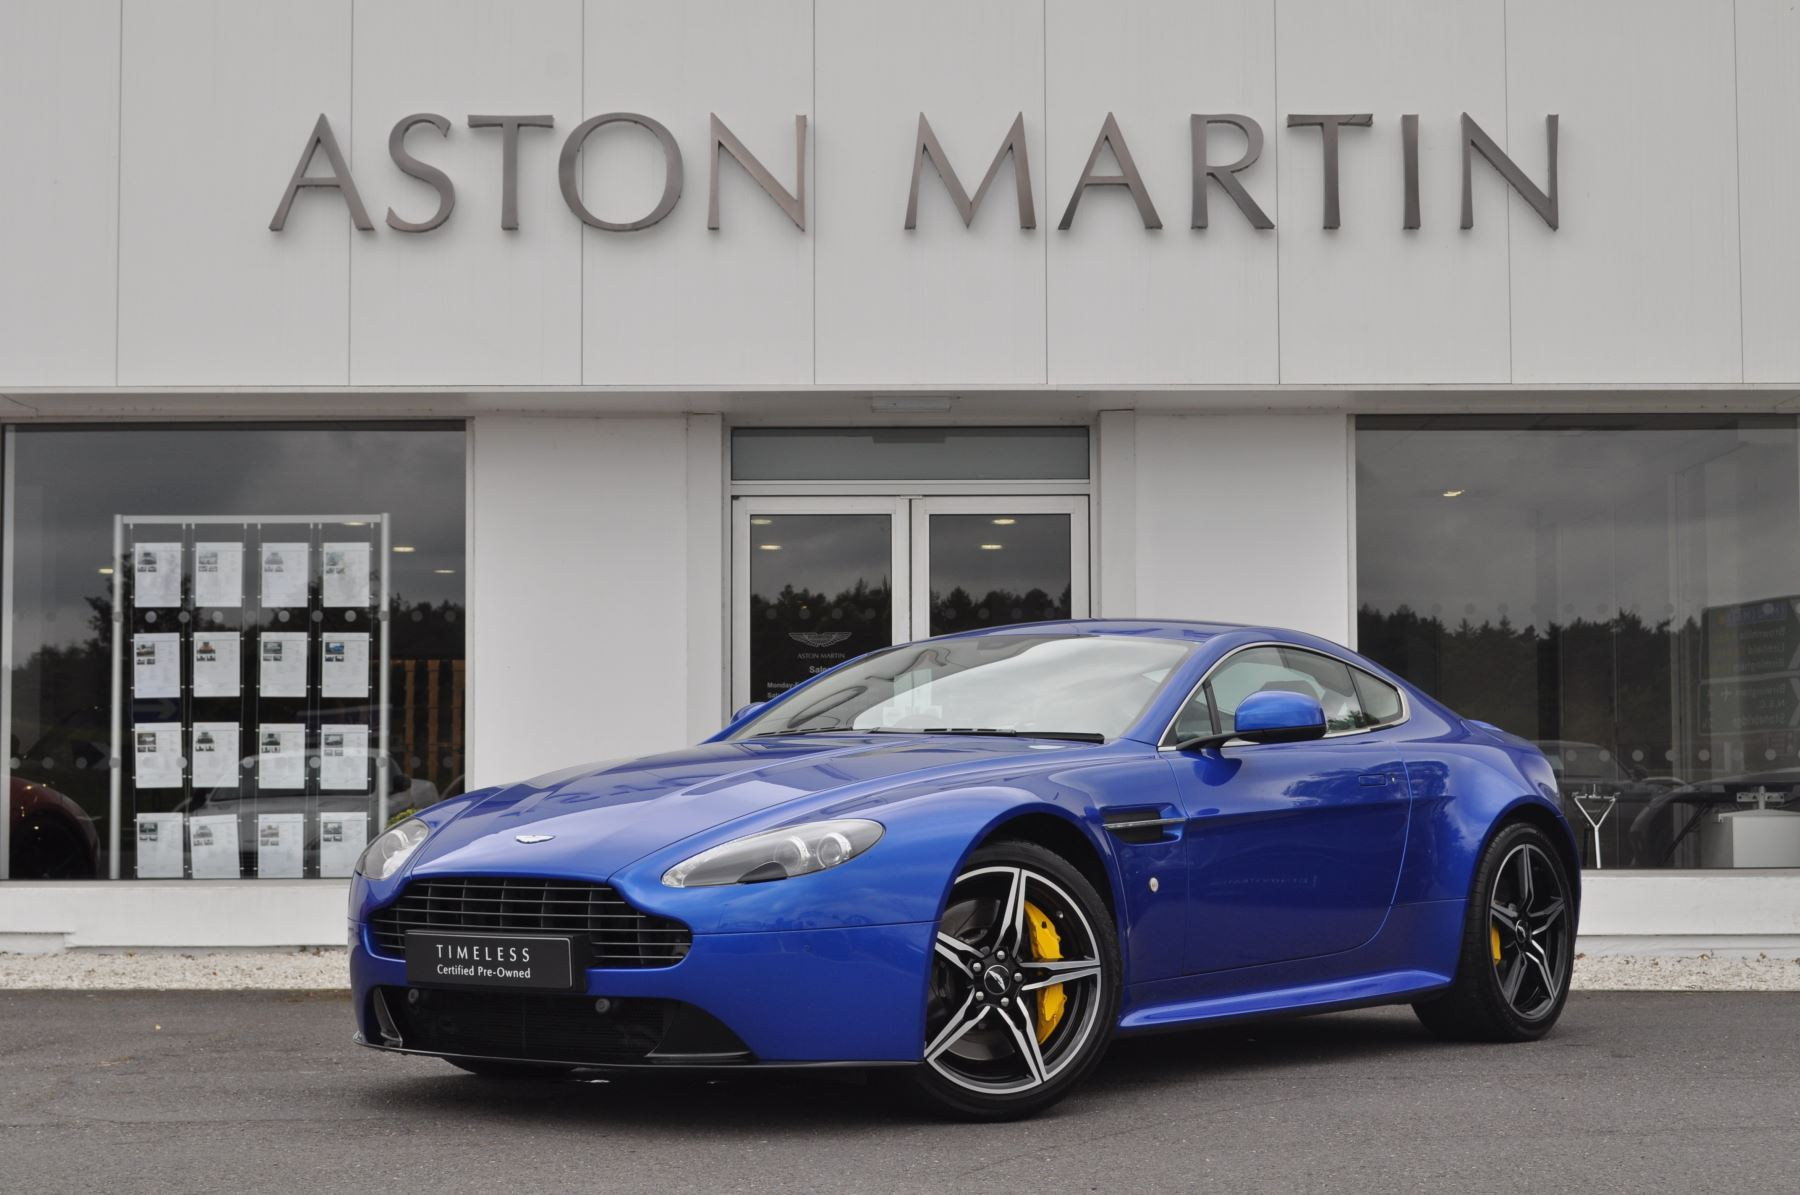 Aston Martin V8 Vantage S Coupe S 2dr Sportshift 4.7 Automatic 3 door Coupe (2017)